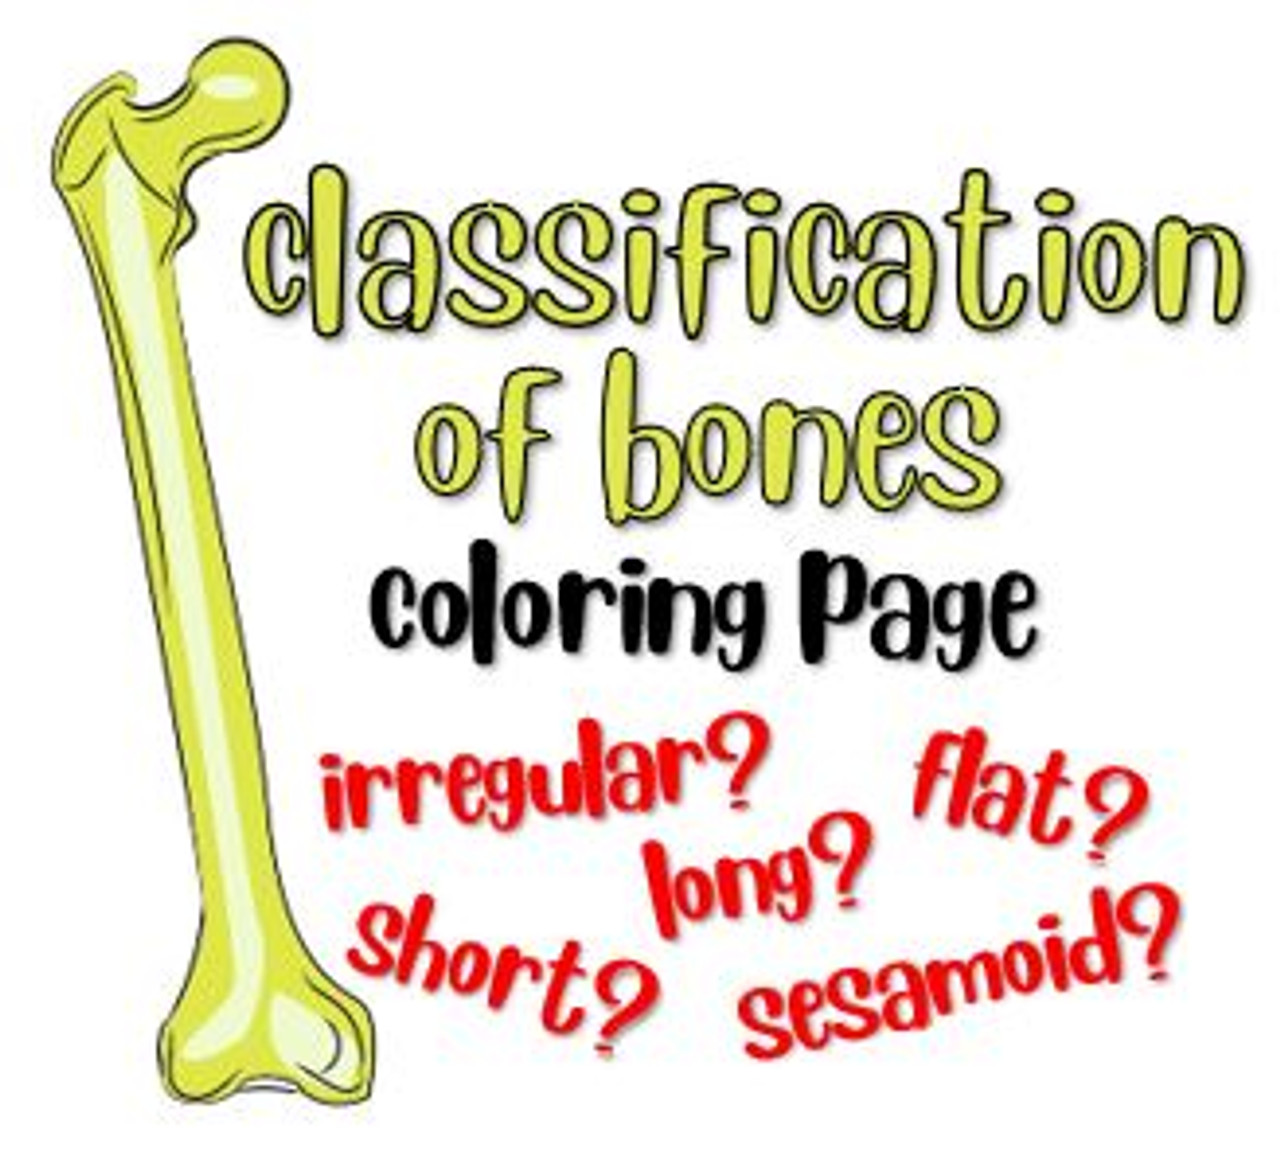 medium resolution of Classification of Bones Coloring Page - Amped Up Learning